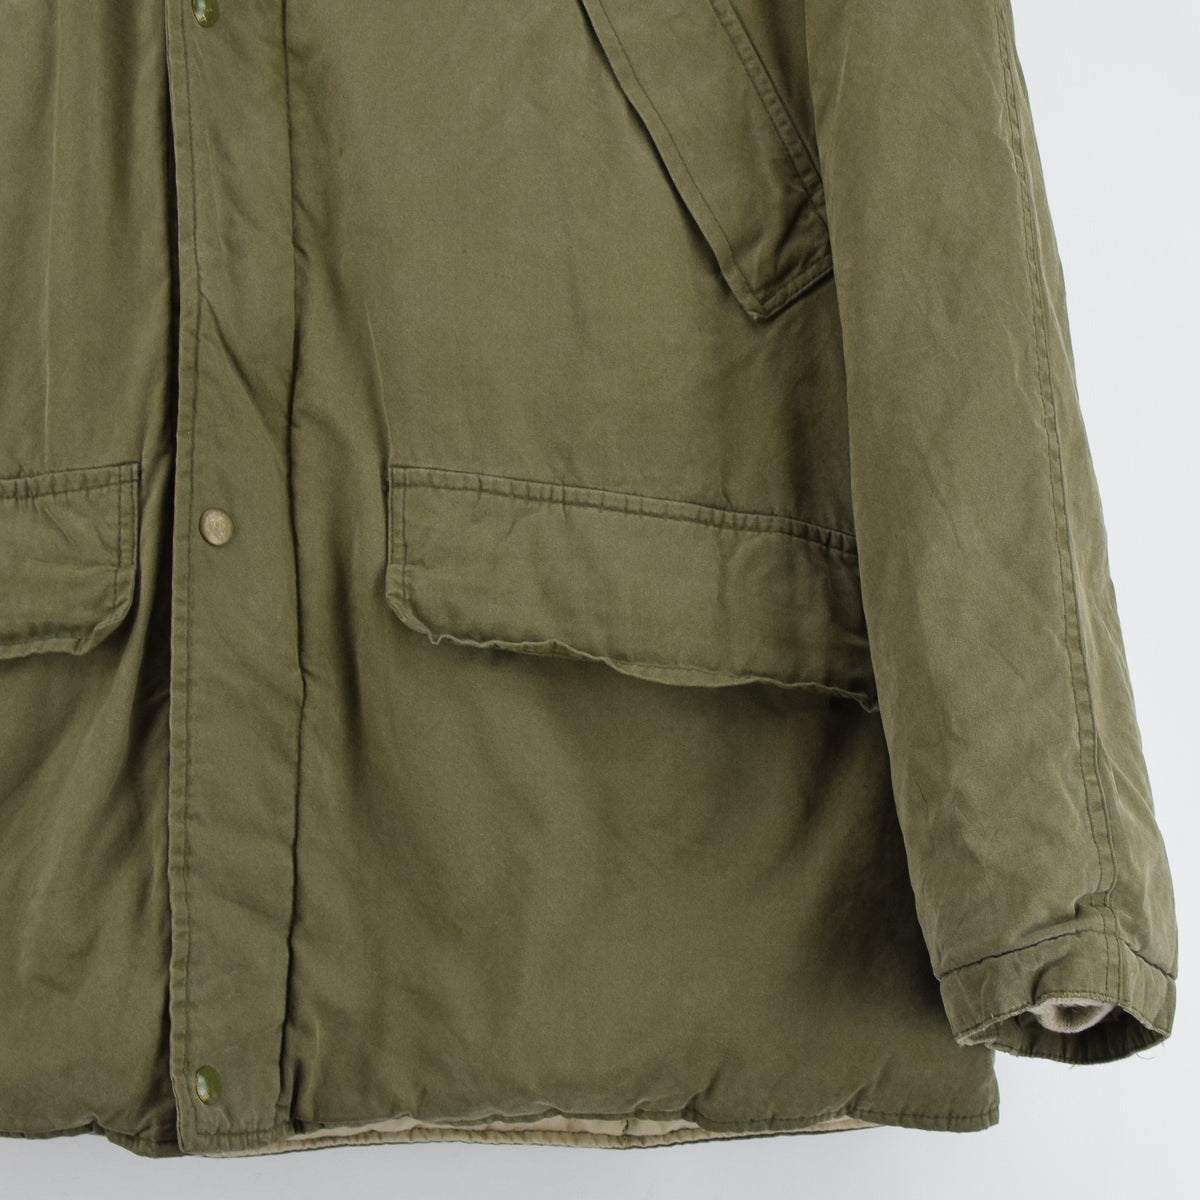 Ralph Lauren Polo Military Style Green Down Parka Jacket Shearling Trim Hood M front hem